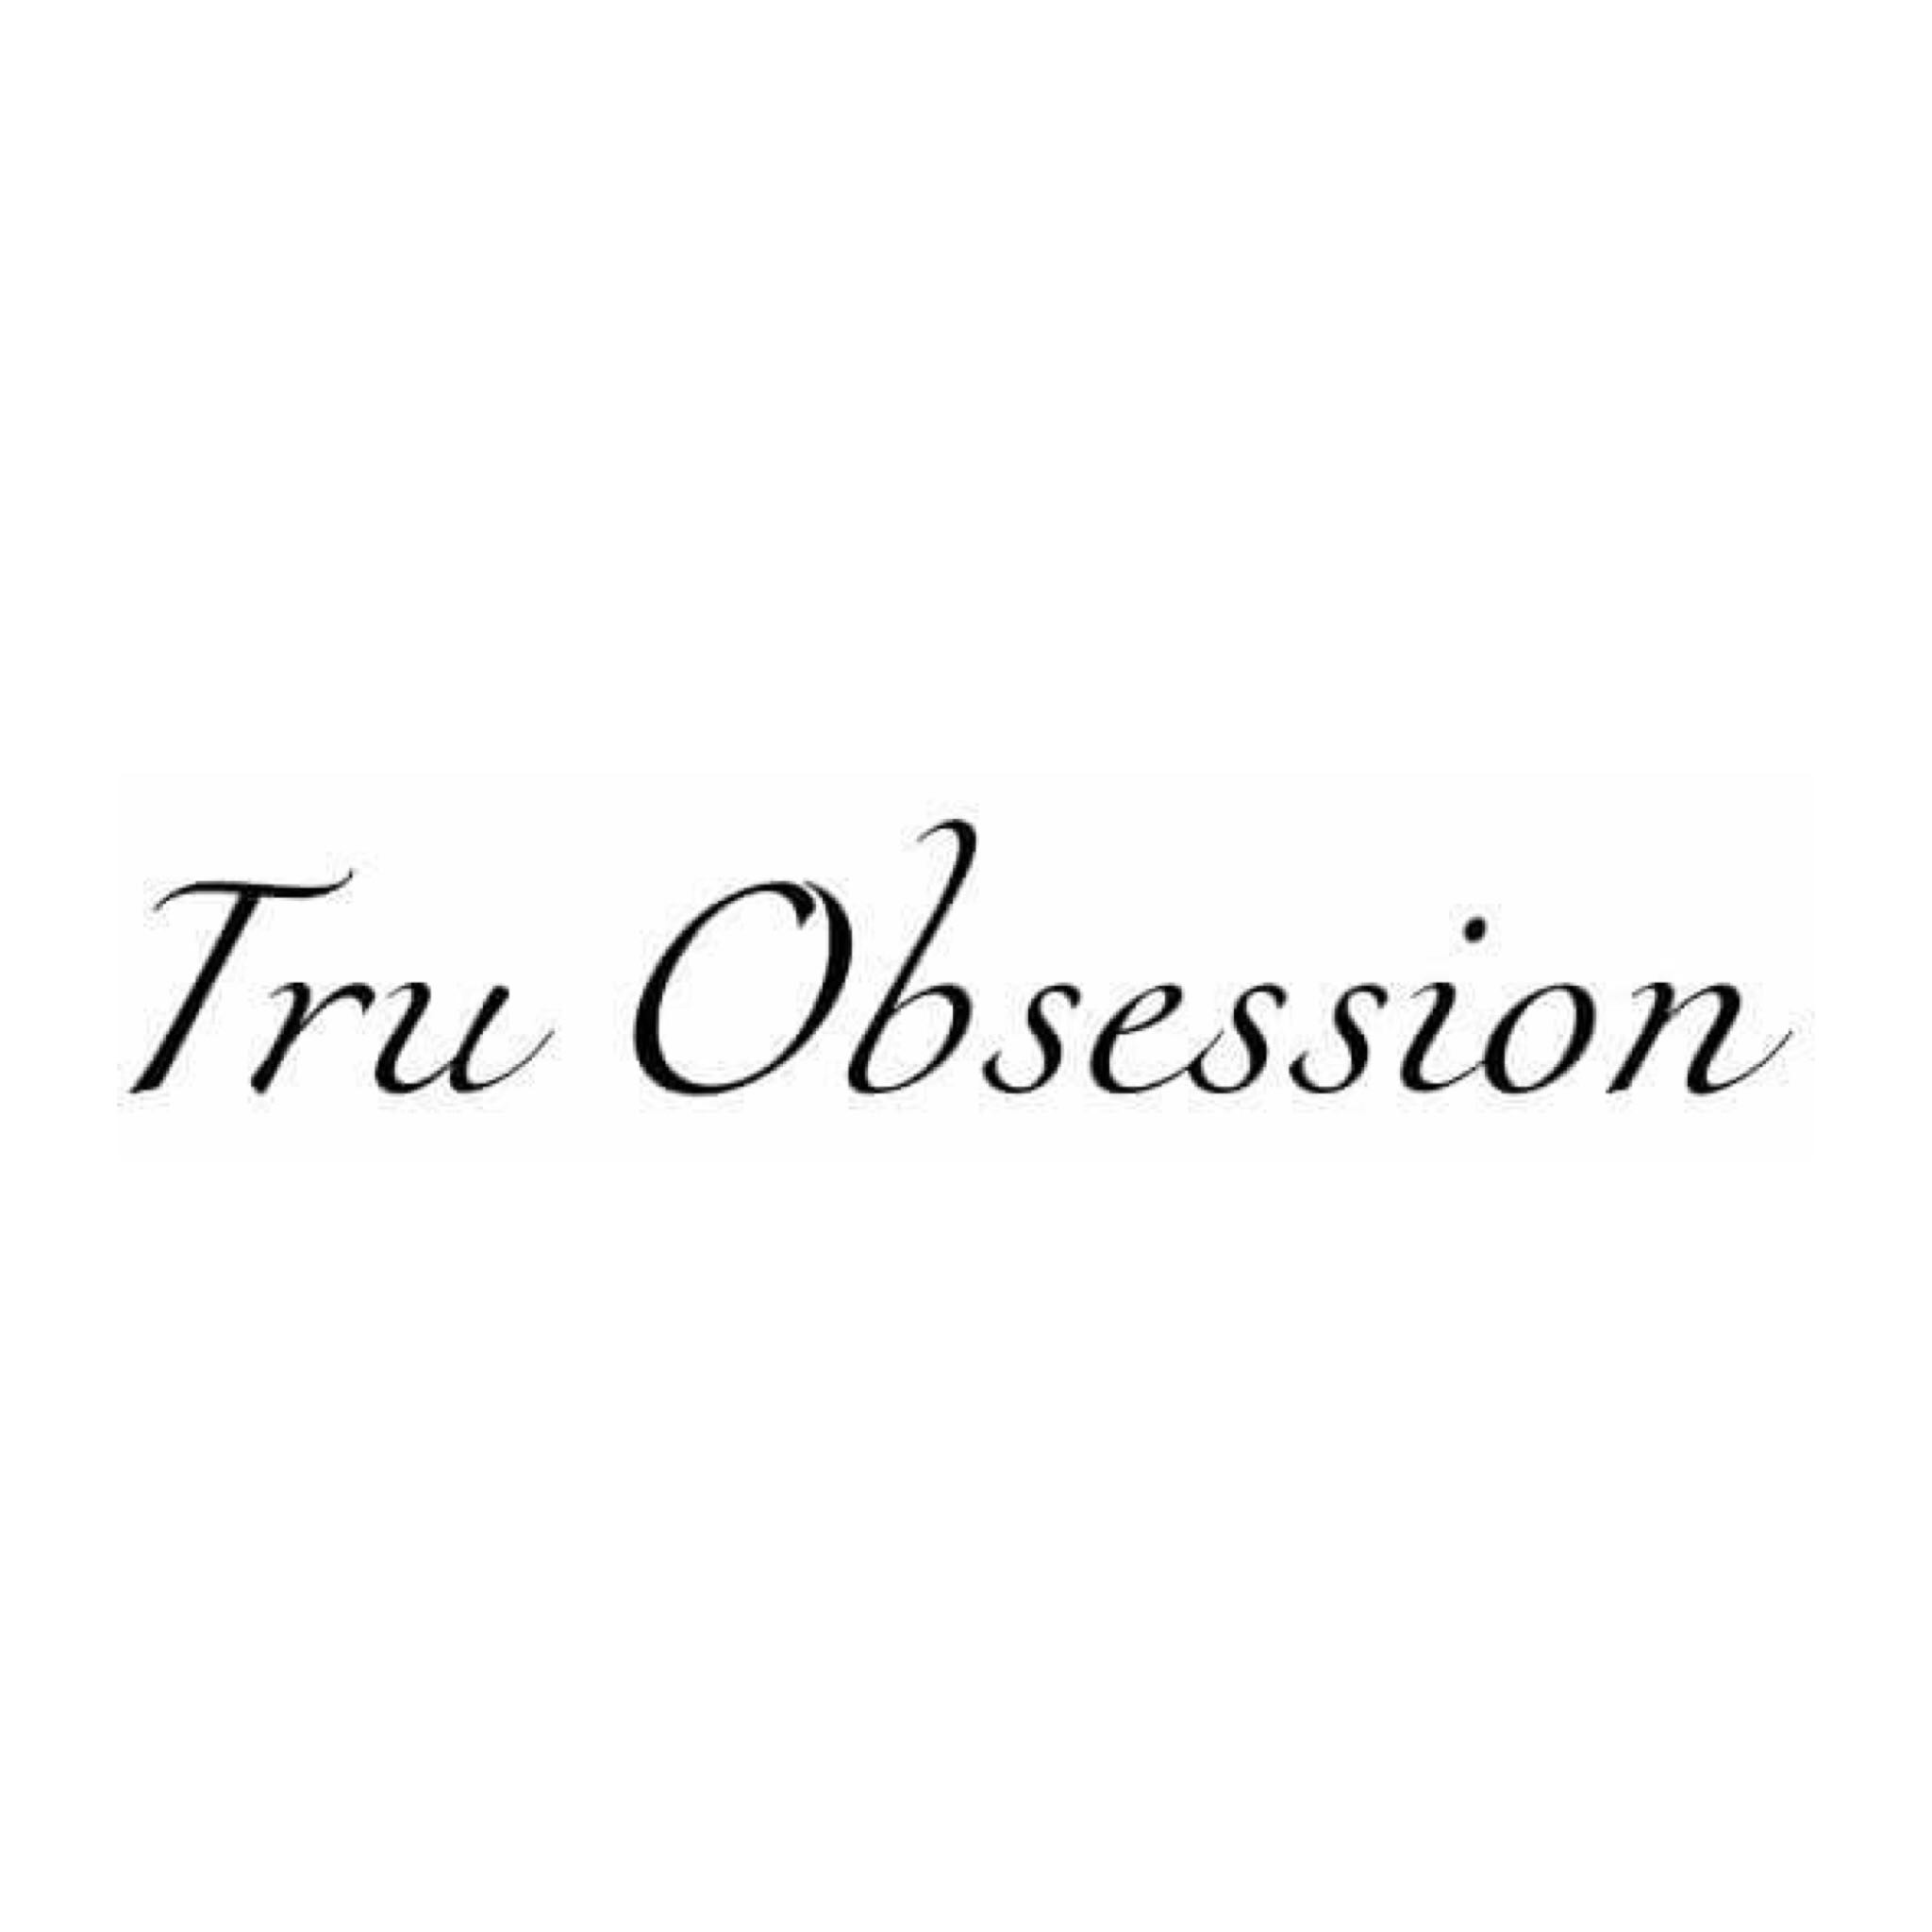 truobsession